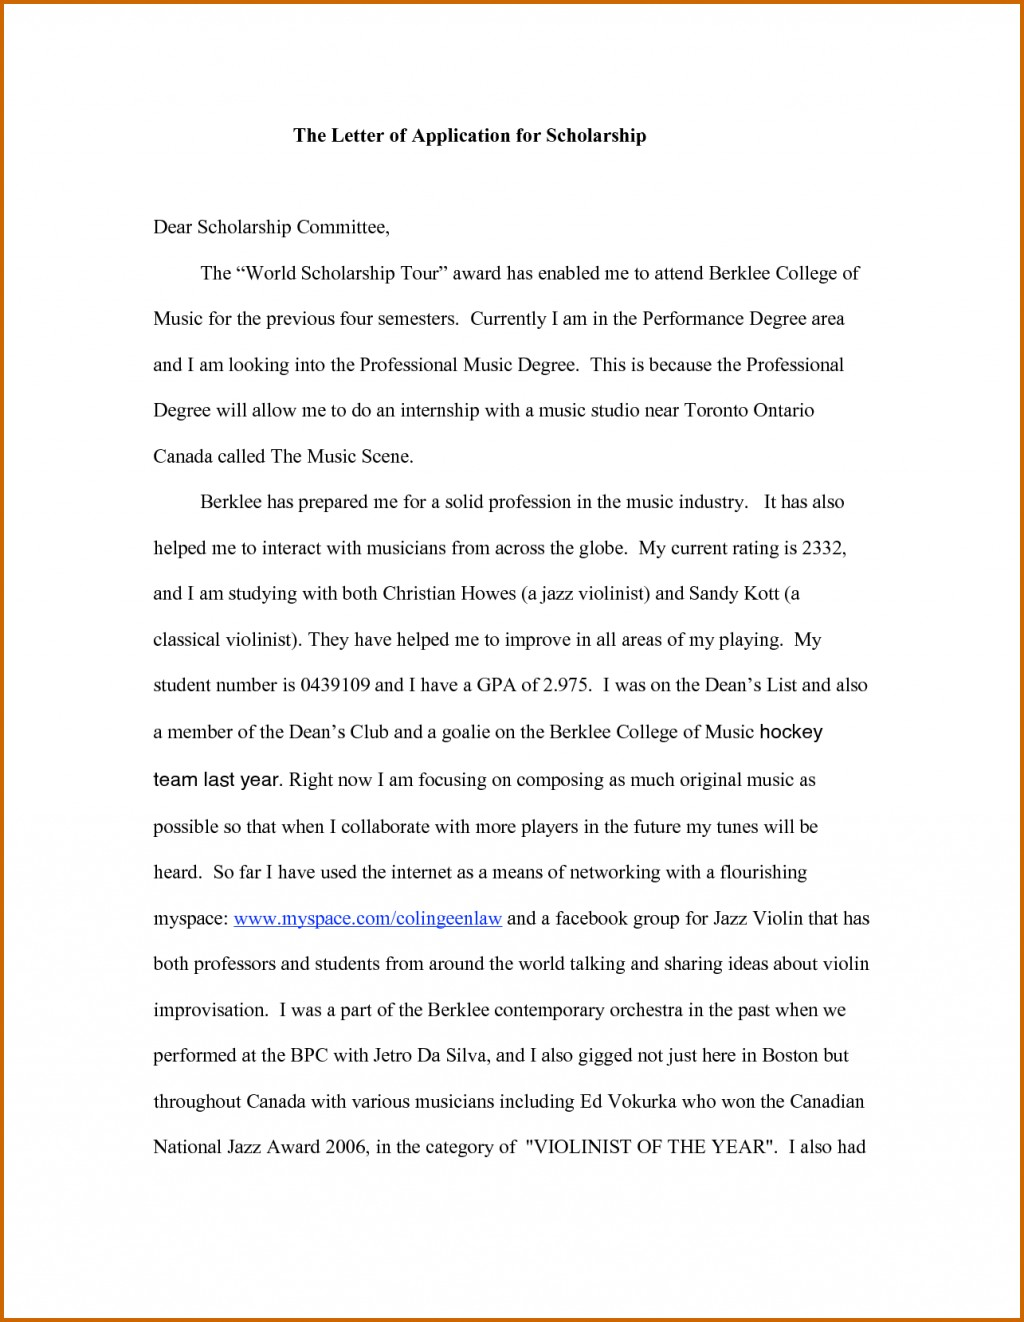 003 How To Write Application For Scholarship Sample Essays Essay Awful Masters On Financial Need Large